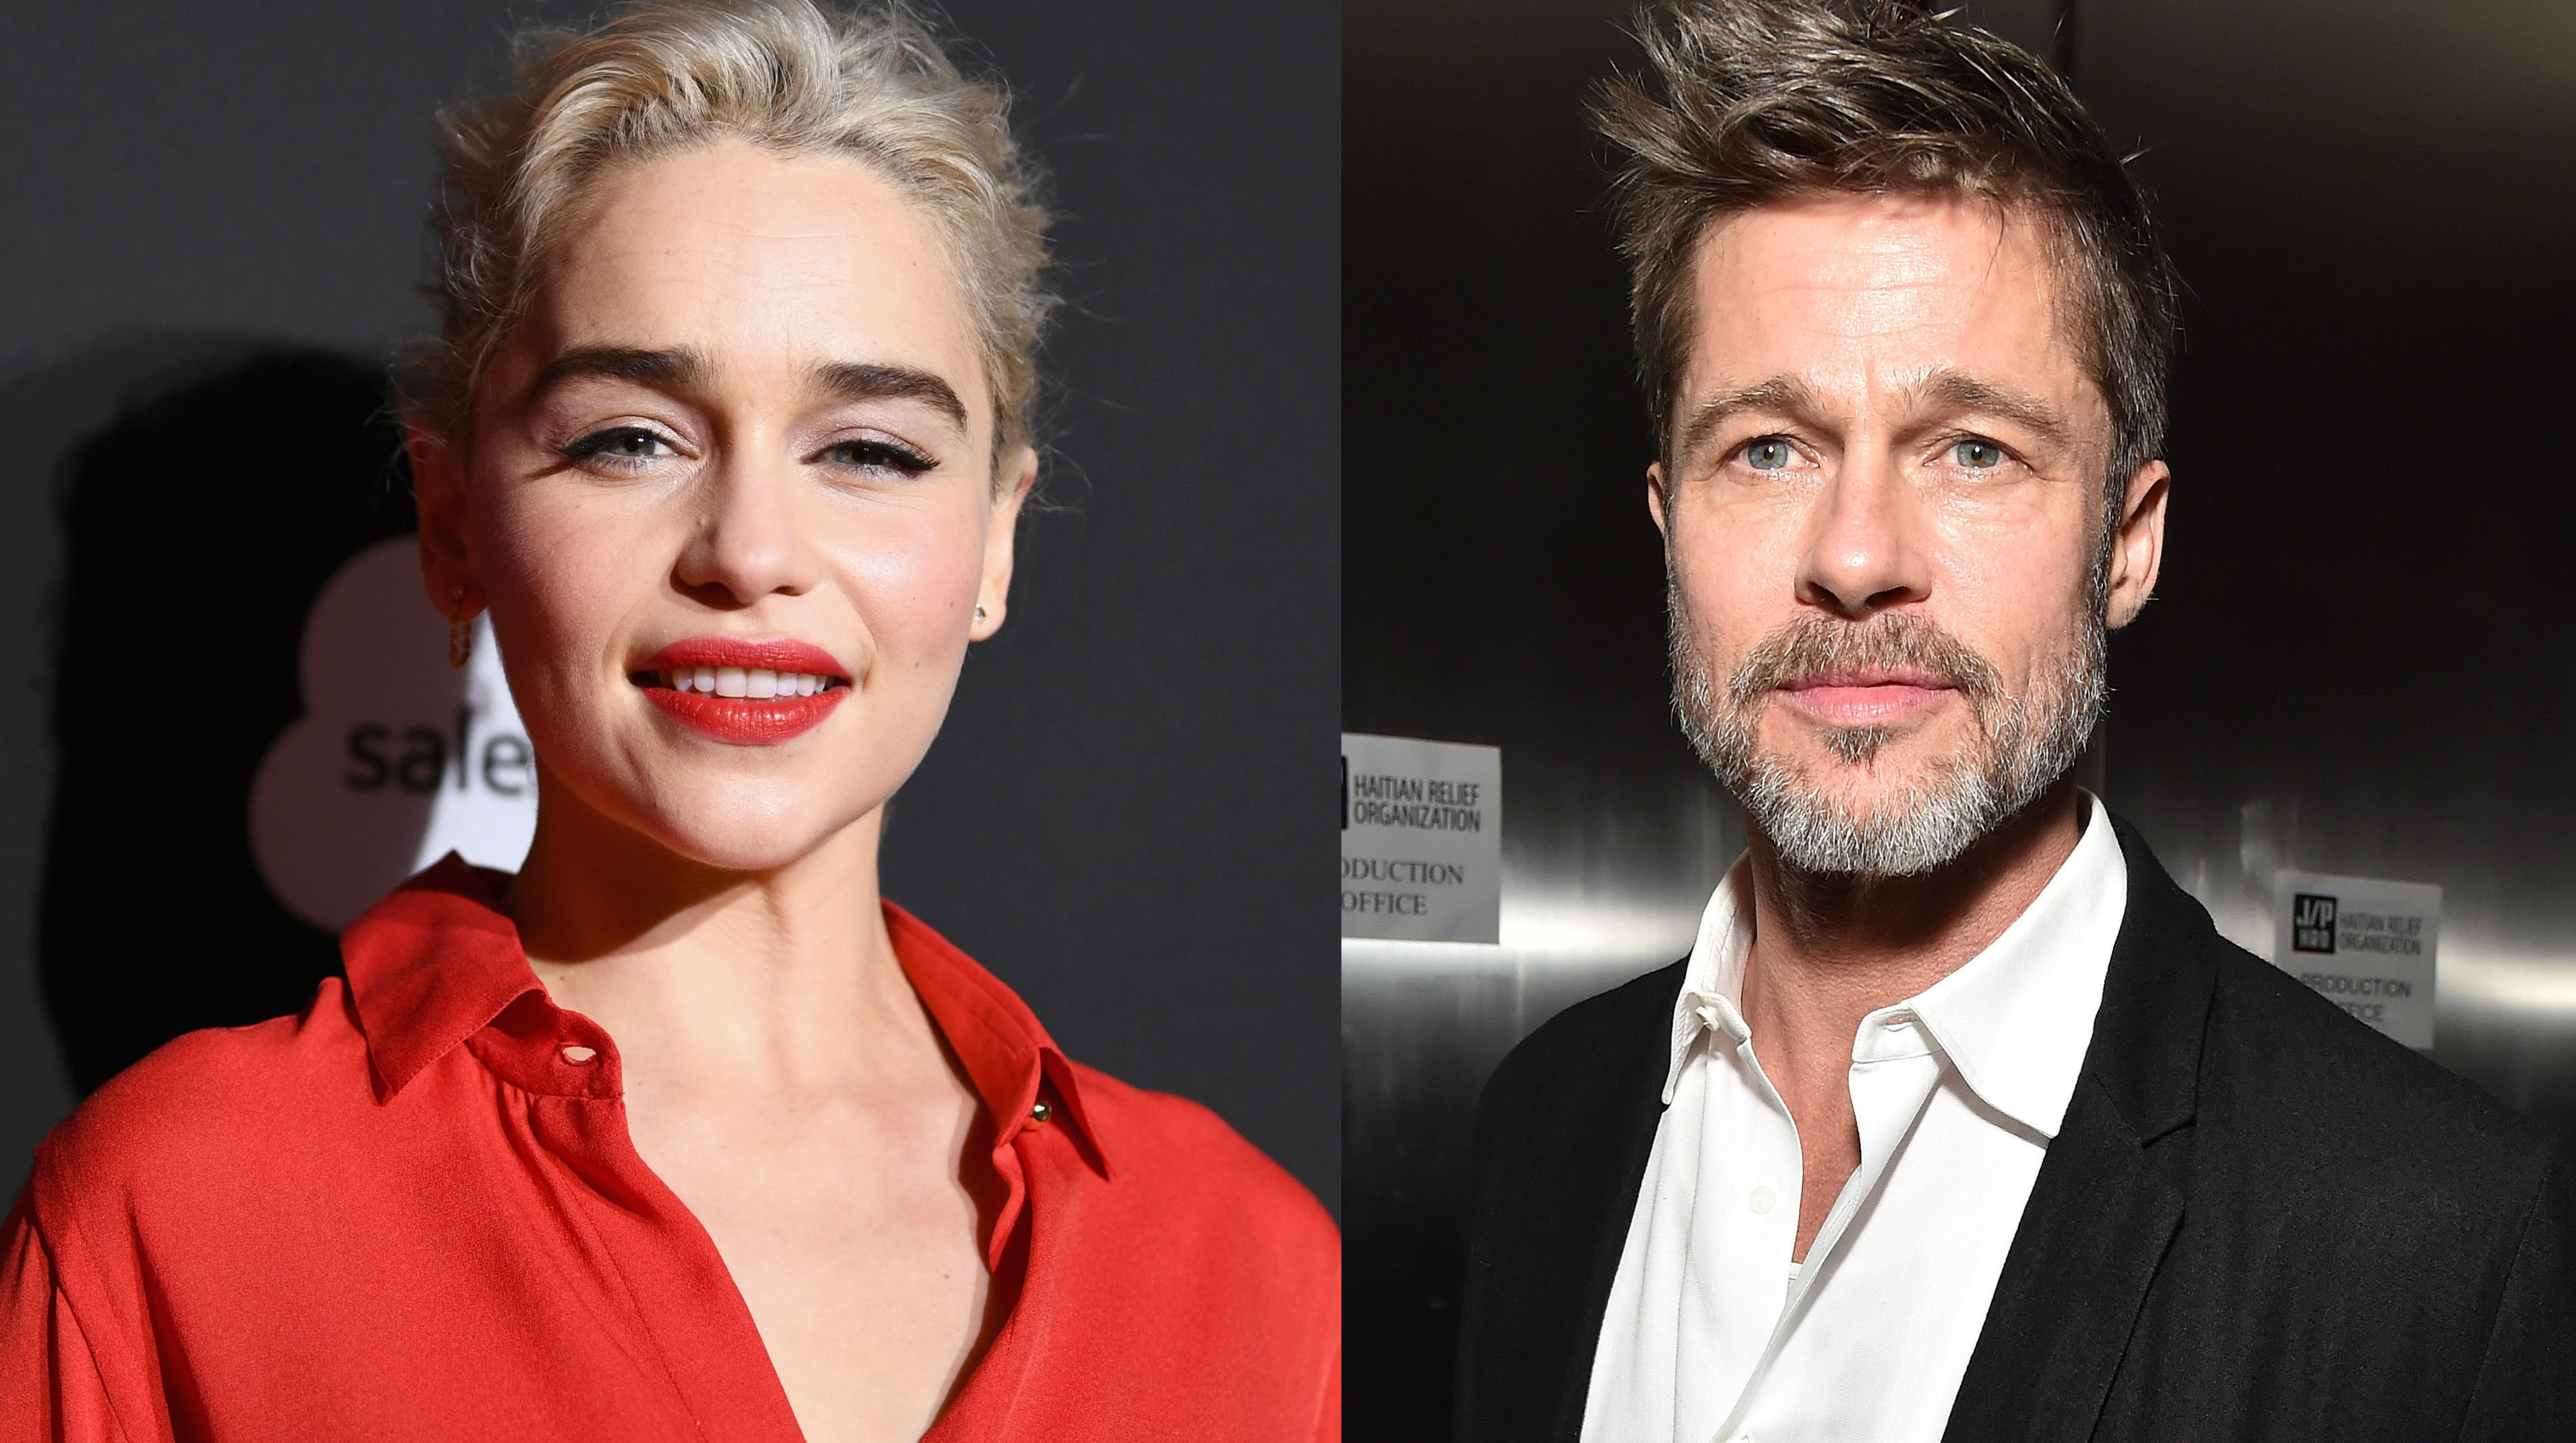 Brad Pitt Bids Six Figures To Watch 'Game Of Thrones' With Emilia Clarke